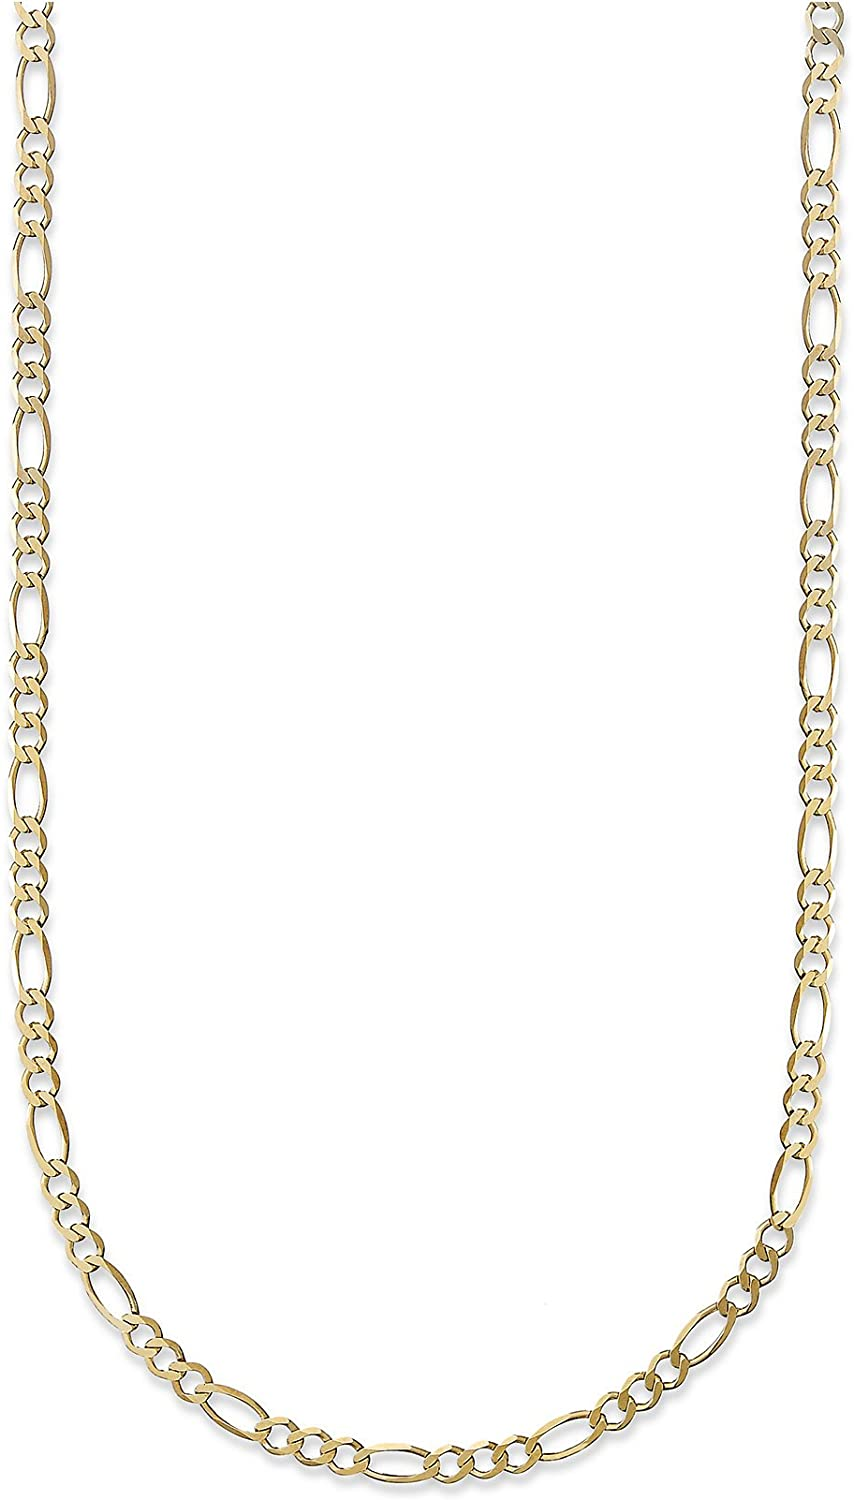 18 Karat Solid Yellow Gold 2mm Figaro Link Chain Necklace - 3+1 Link - Made In Italy